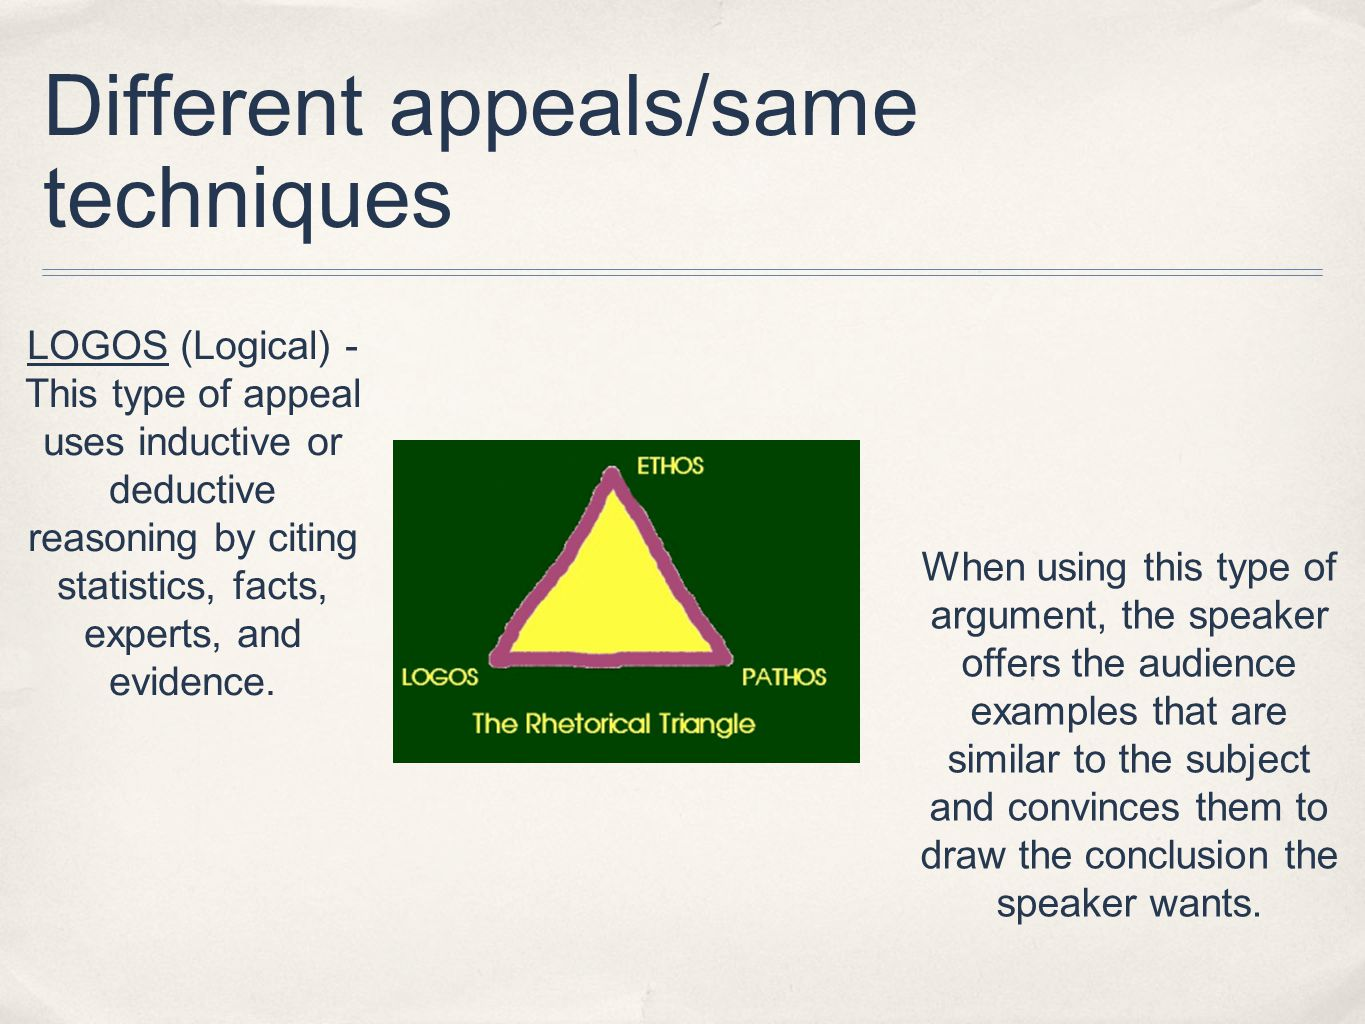 Different appeals/same techniques LOGOS (Logical) - This type of appeal uses inductive or deductive reasoning by citing statistics, facts, experts, and evidence.